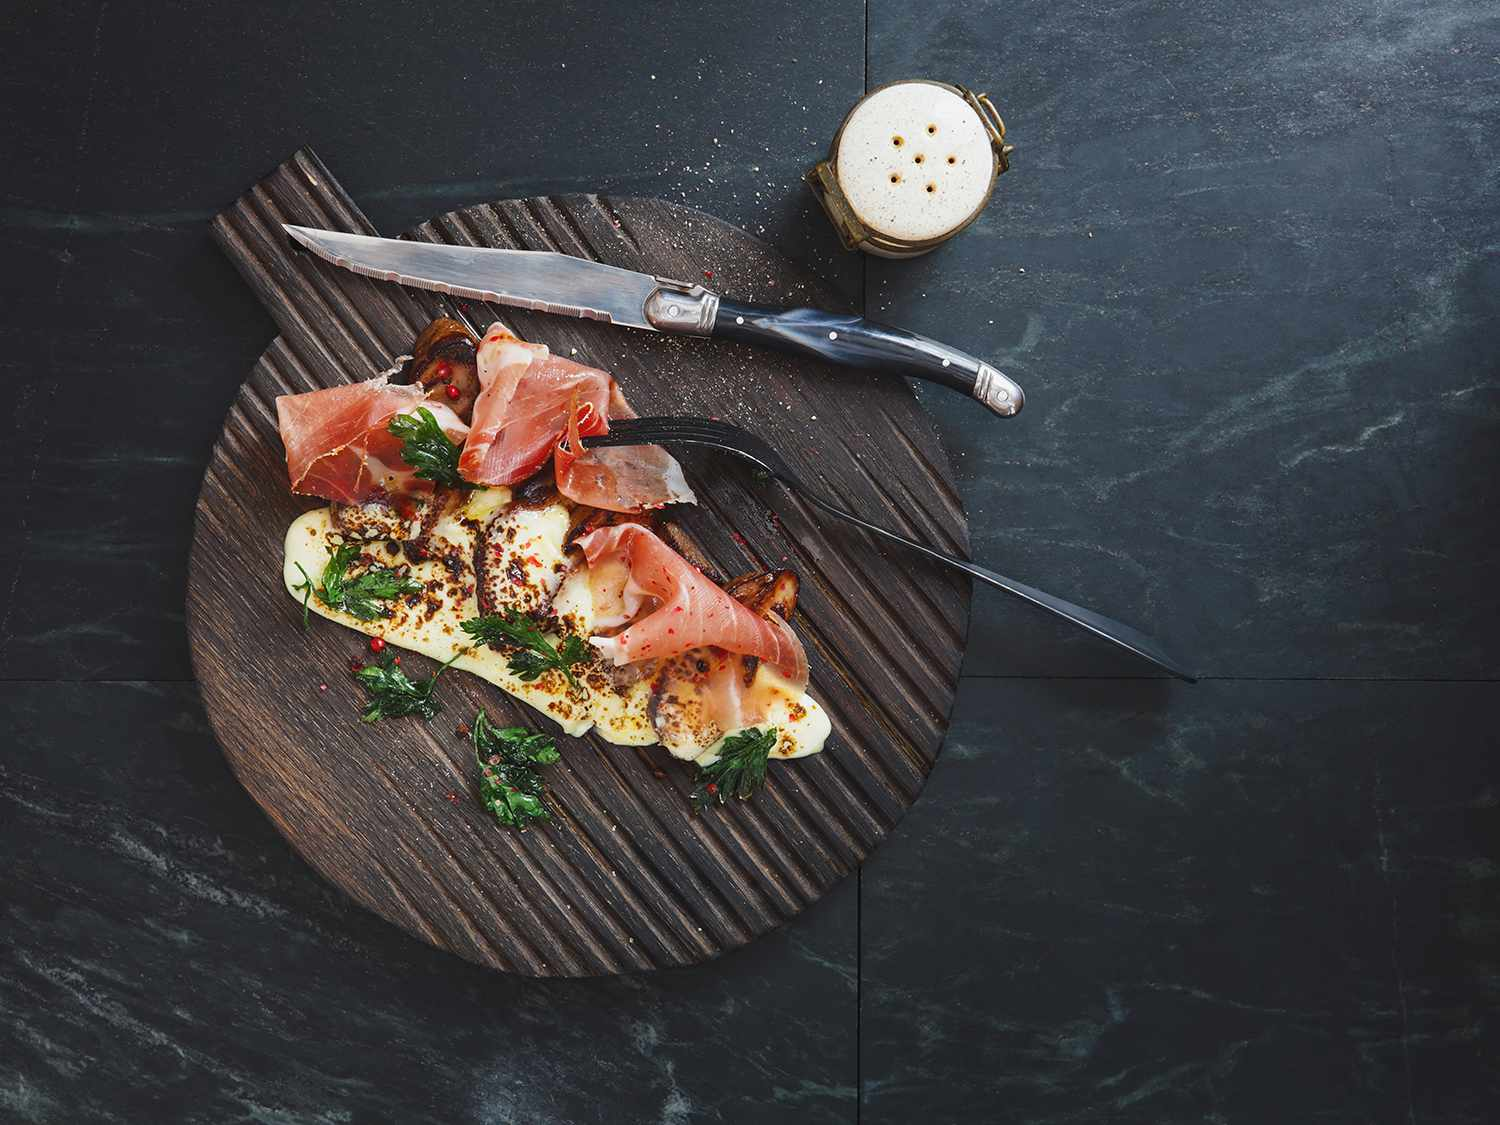 Prosciutto with porcini, cheese and parsley